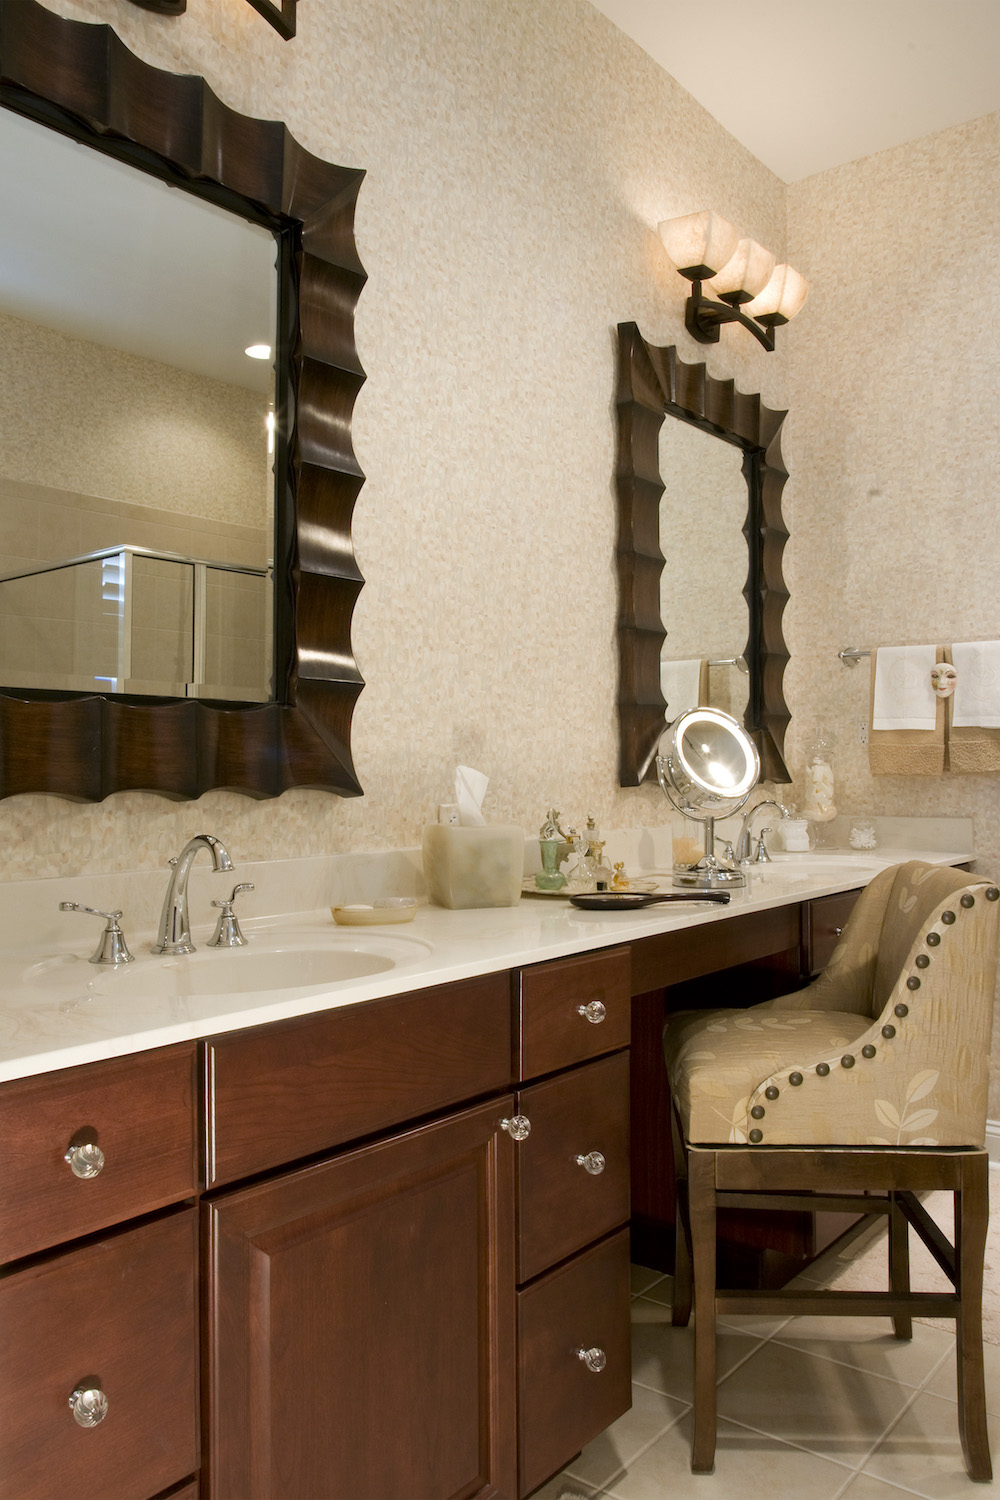 12Ashford-Bathroom.jpg